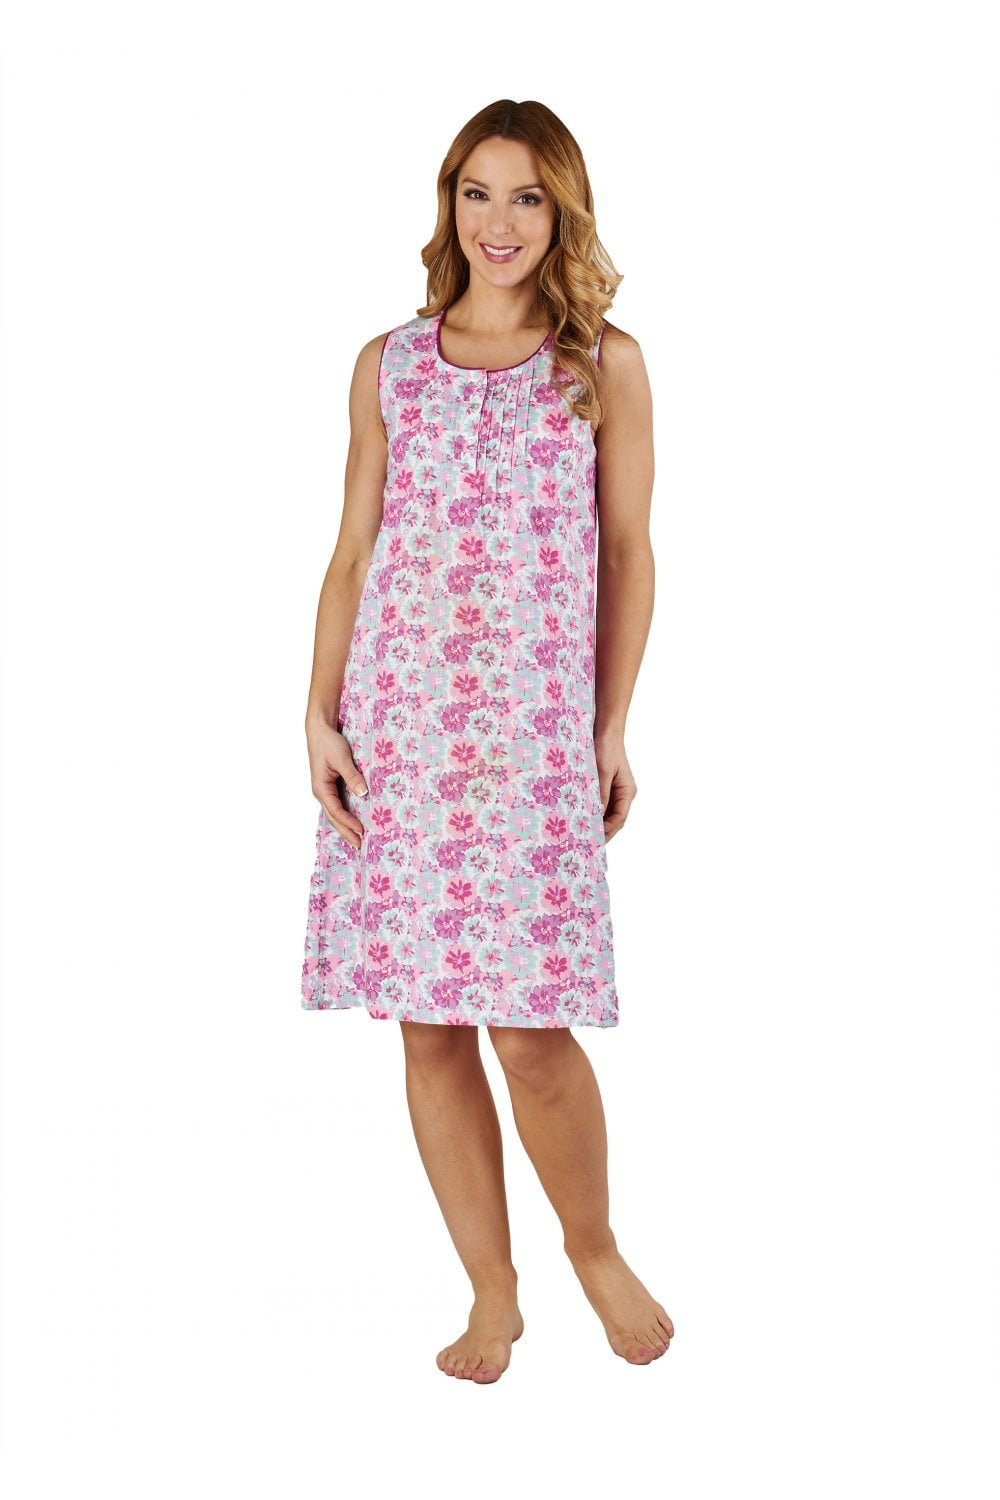 Slenderella Painted Flowers Sleeveless Nightdress - Pink - Nightwear ... a35bed41f